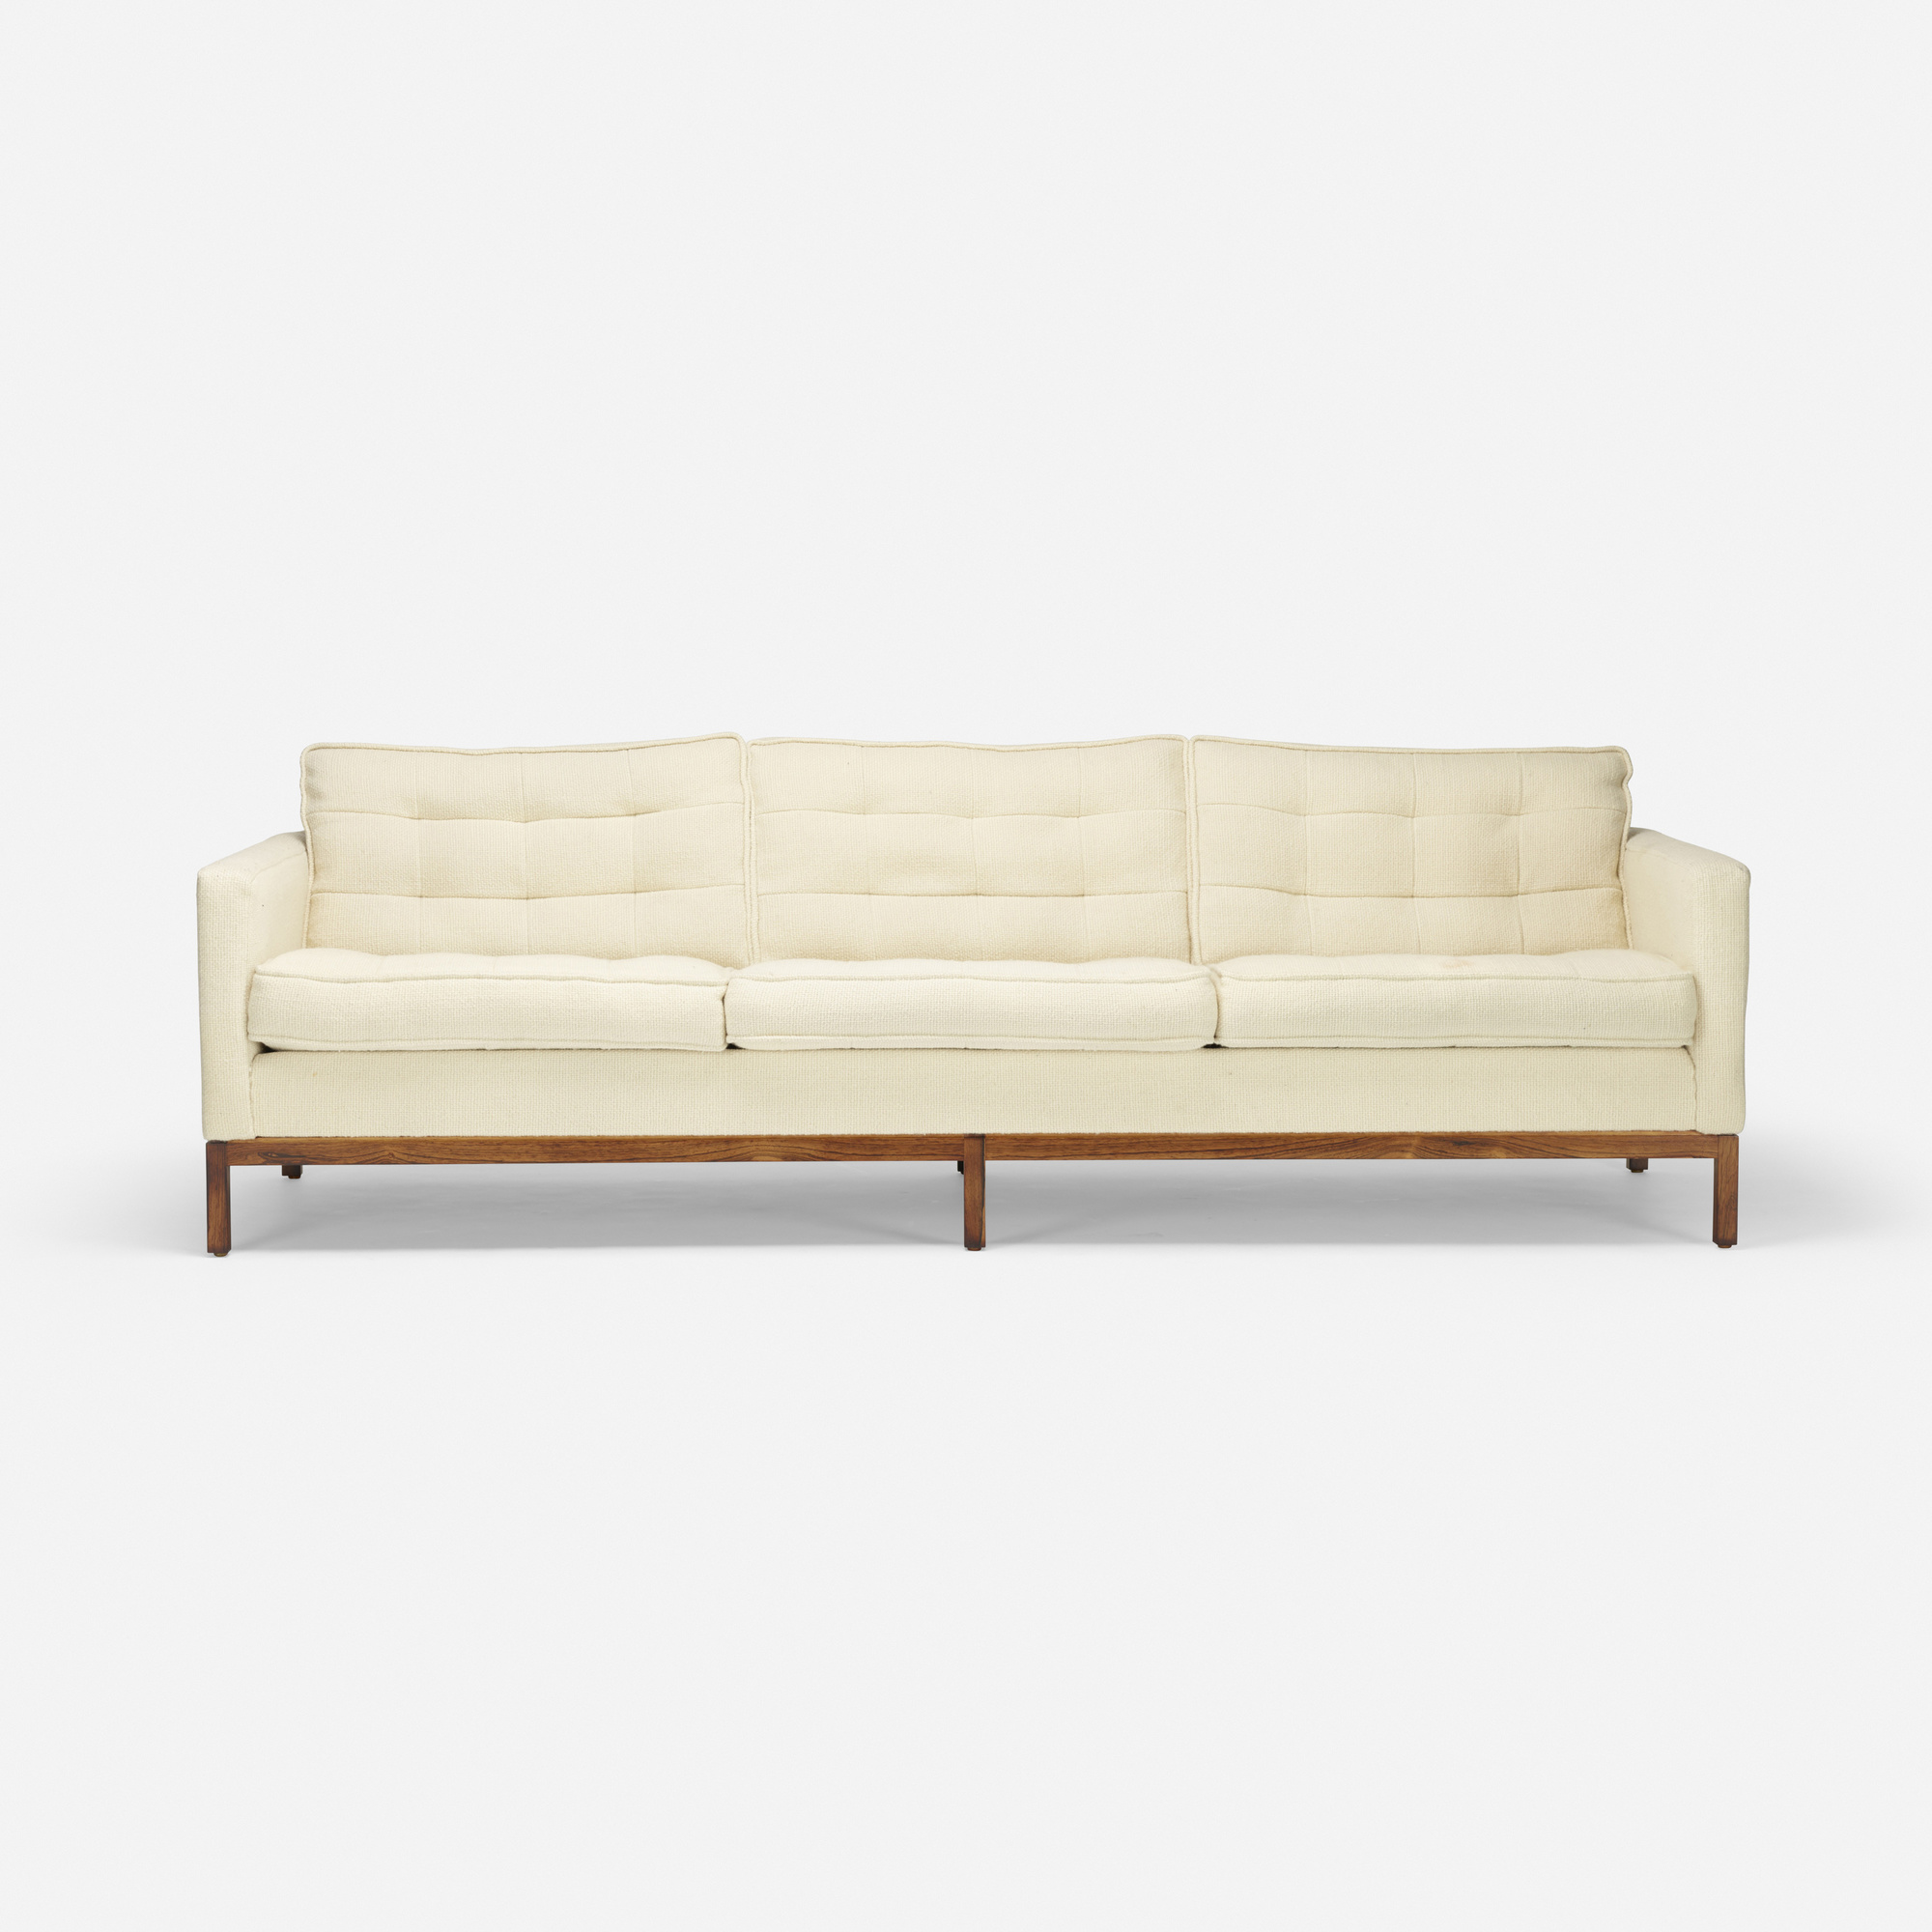 393: Florence Knoll / sofa (2 of 3)